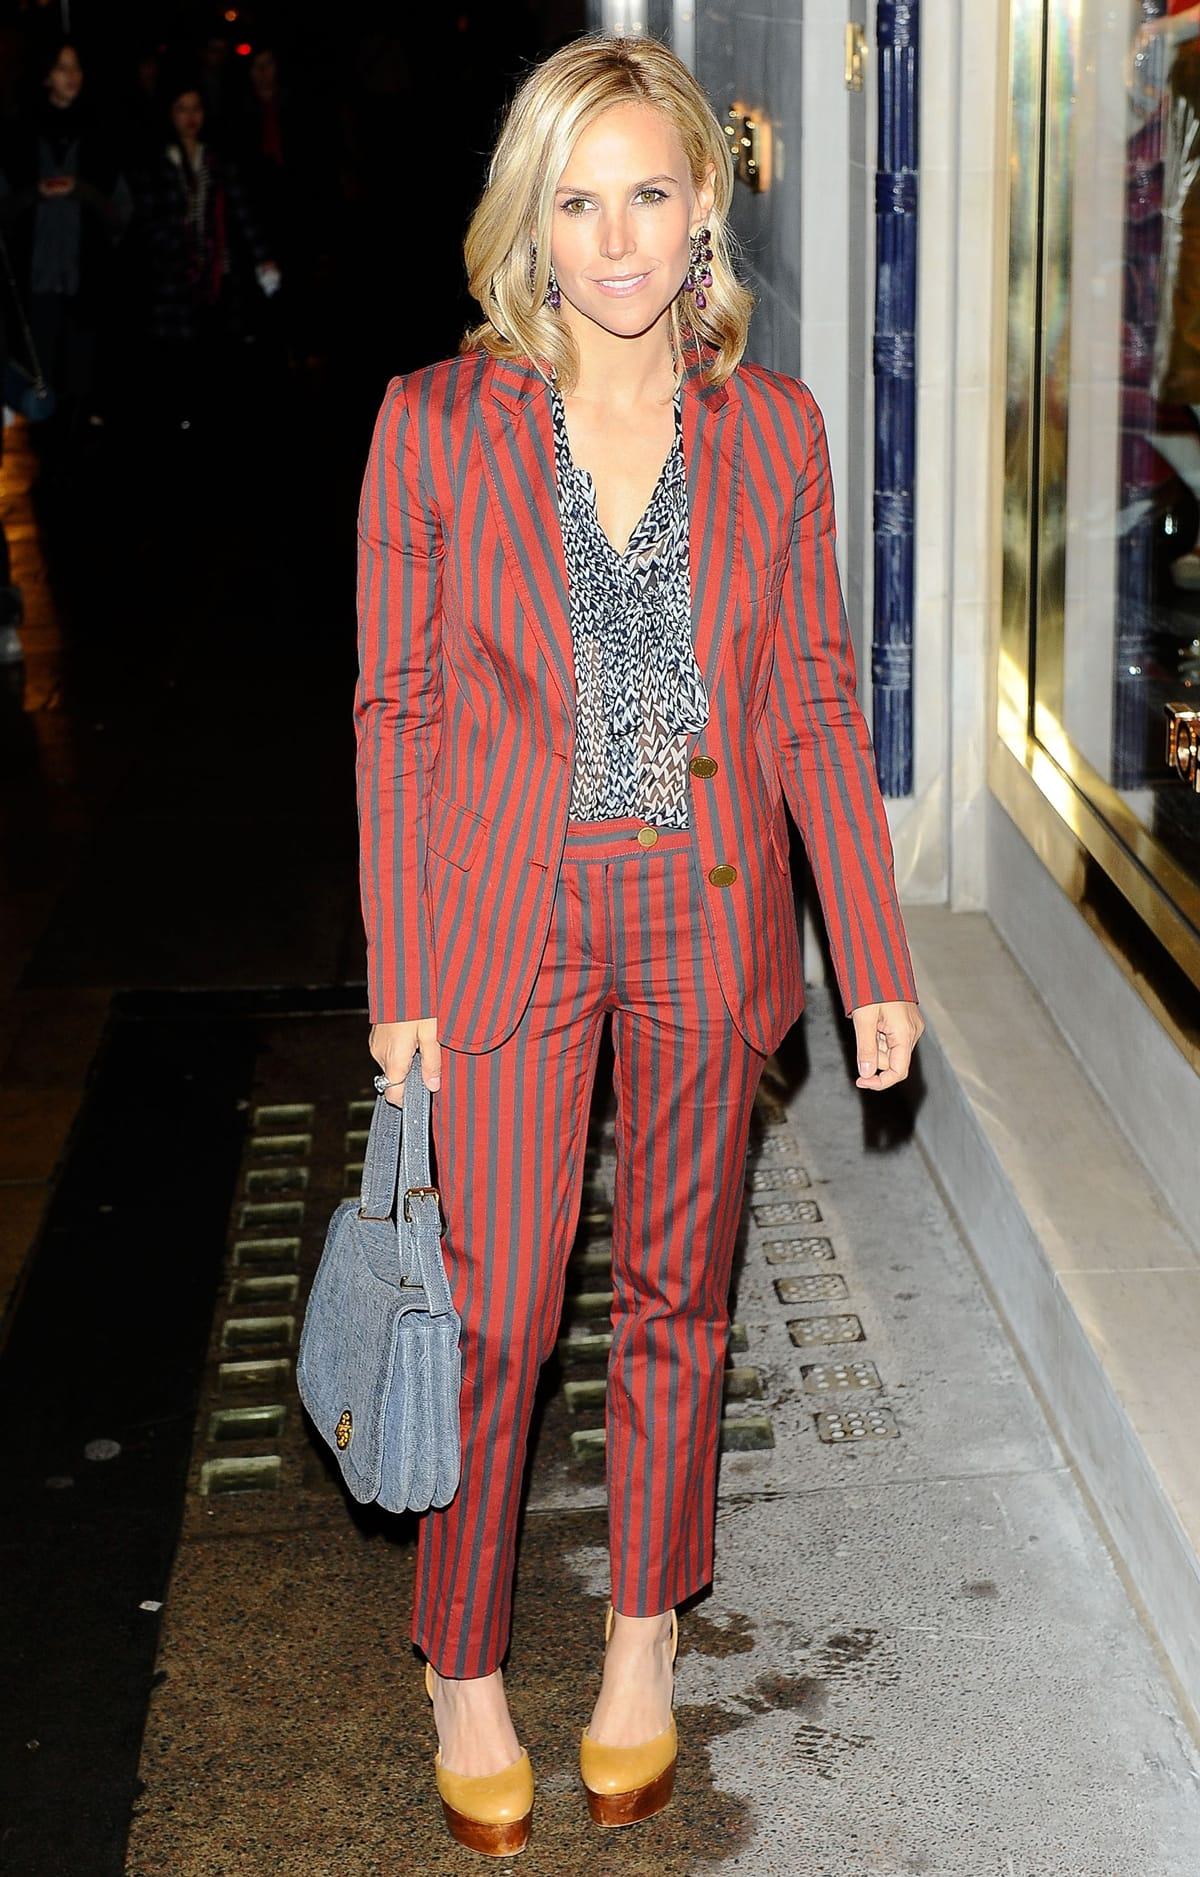 Tory Burch in a striped suit at the opening of her first London flagship store